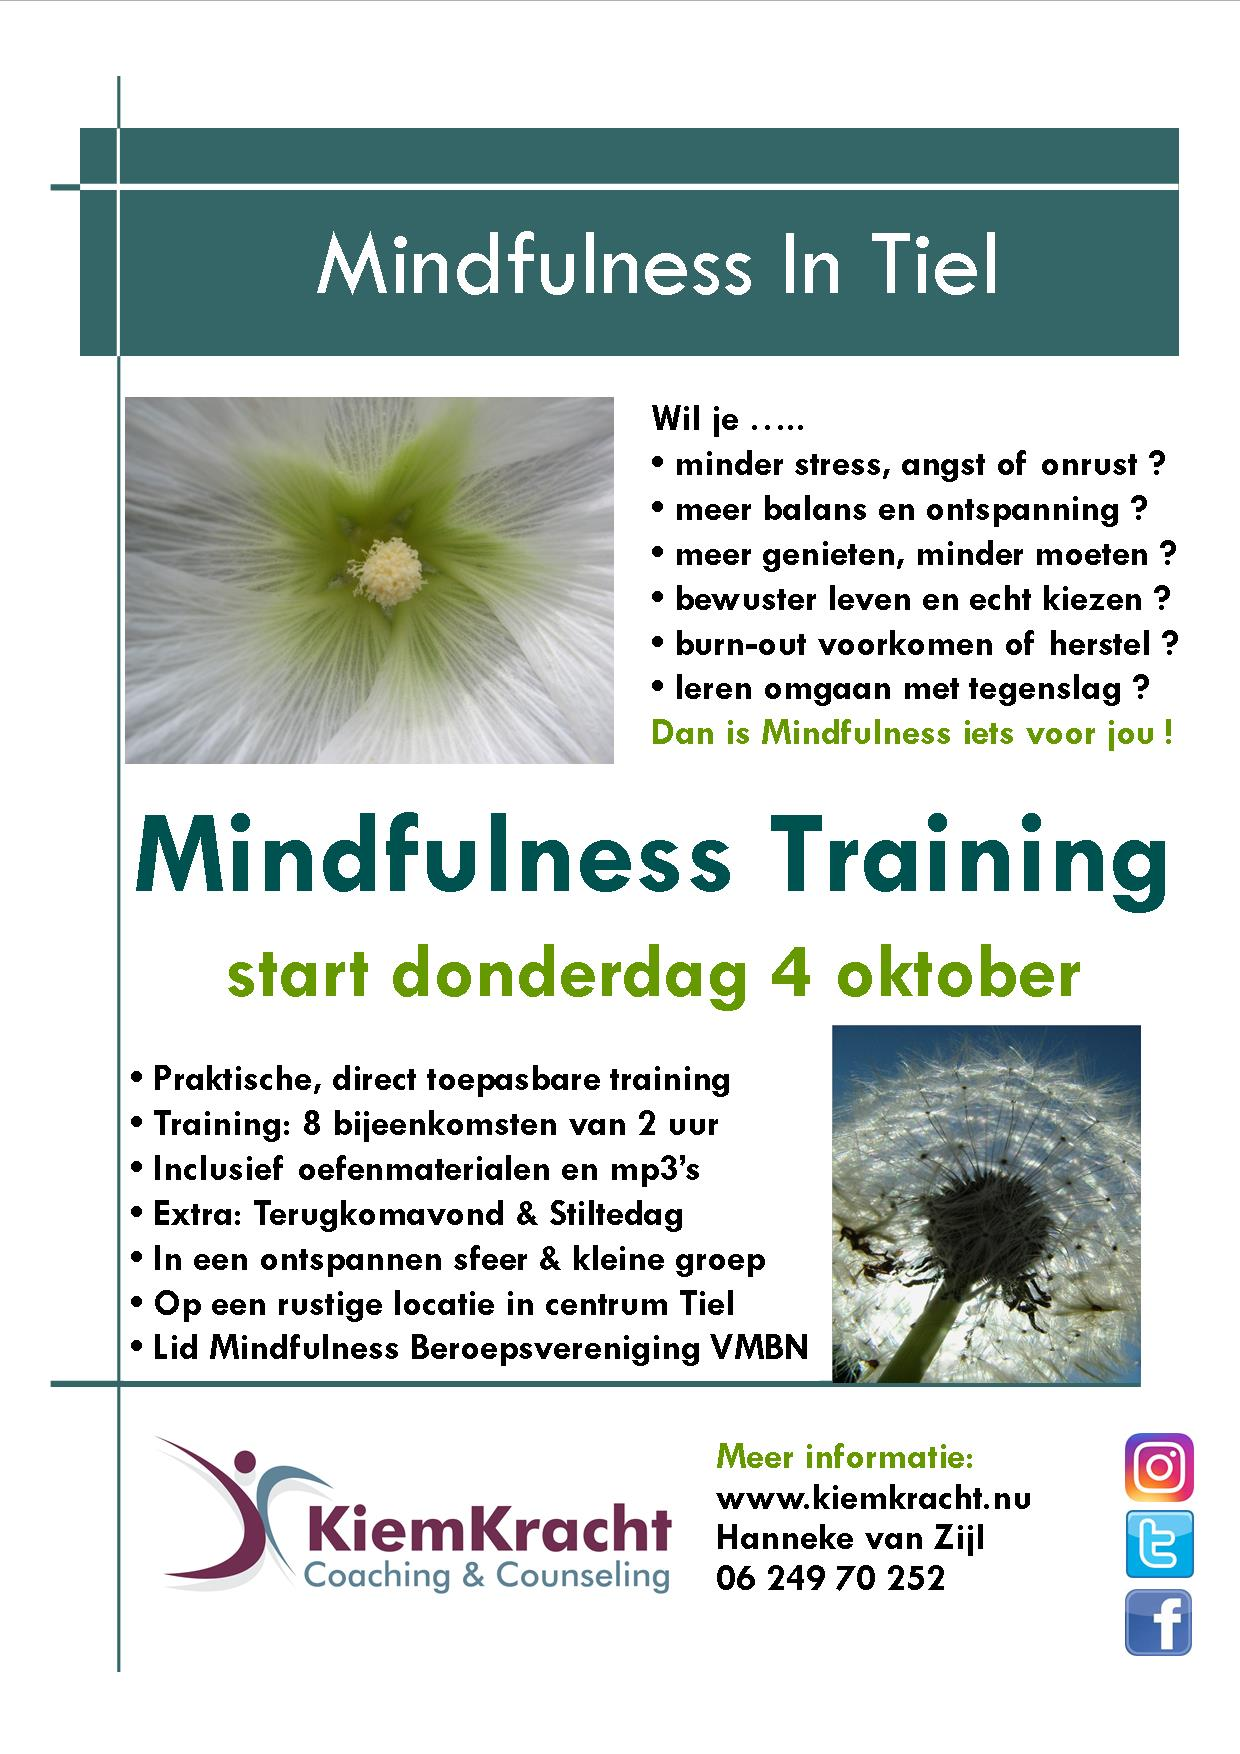 Mindfulness Training 4-10-2018